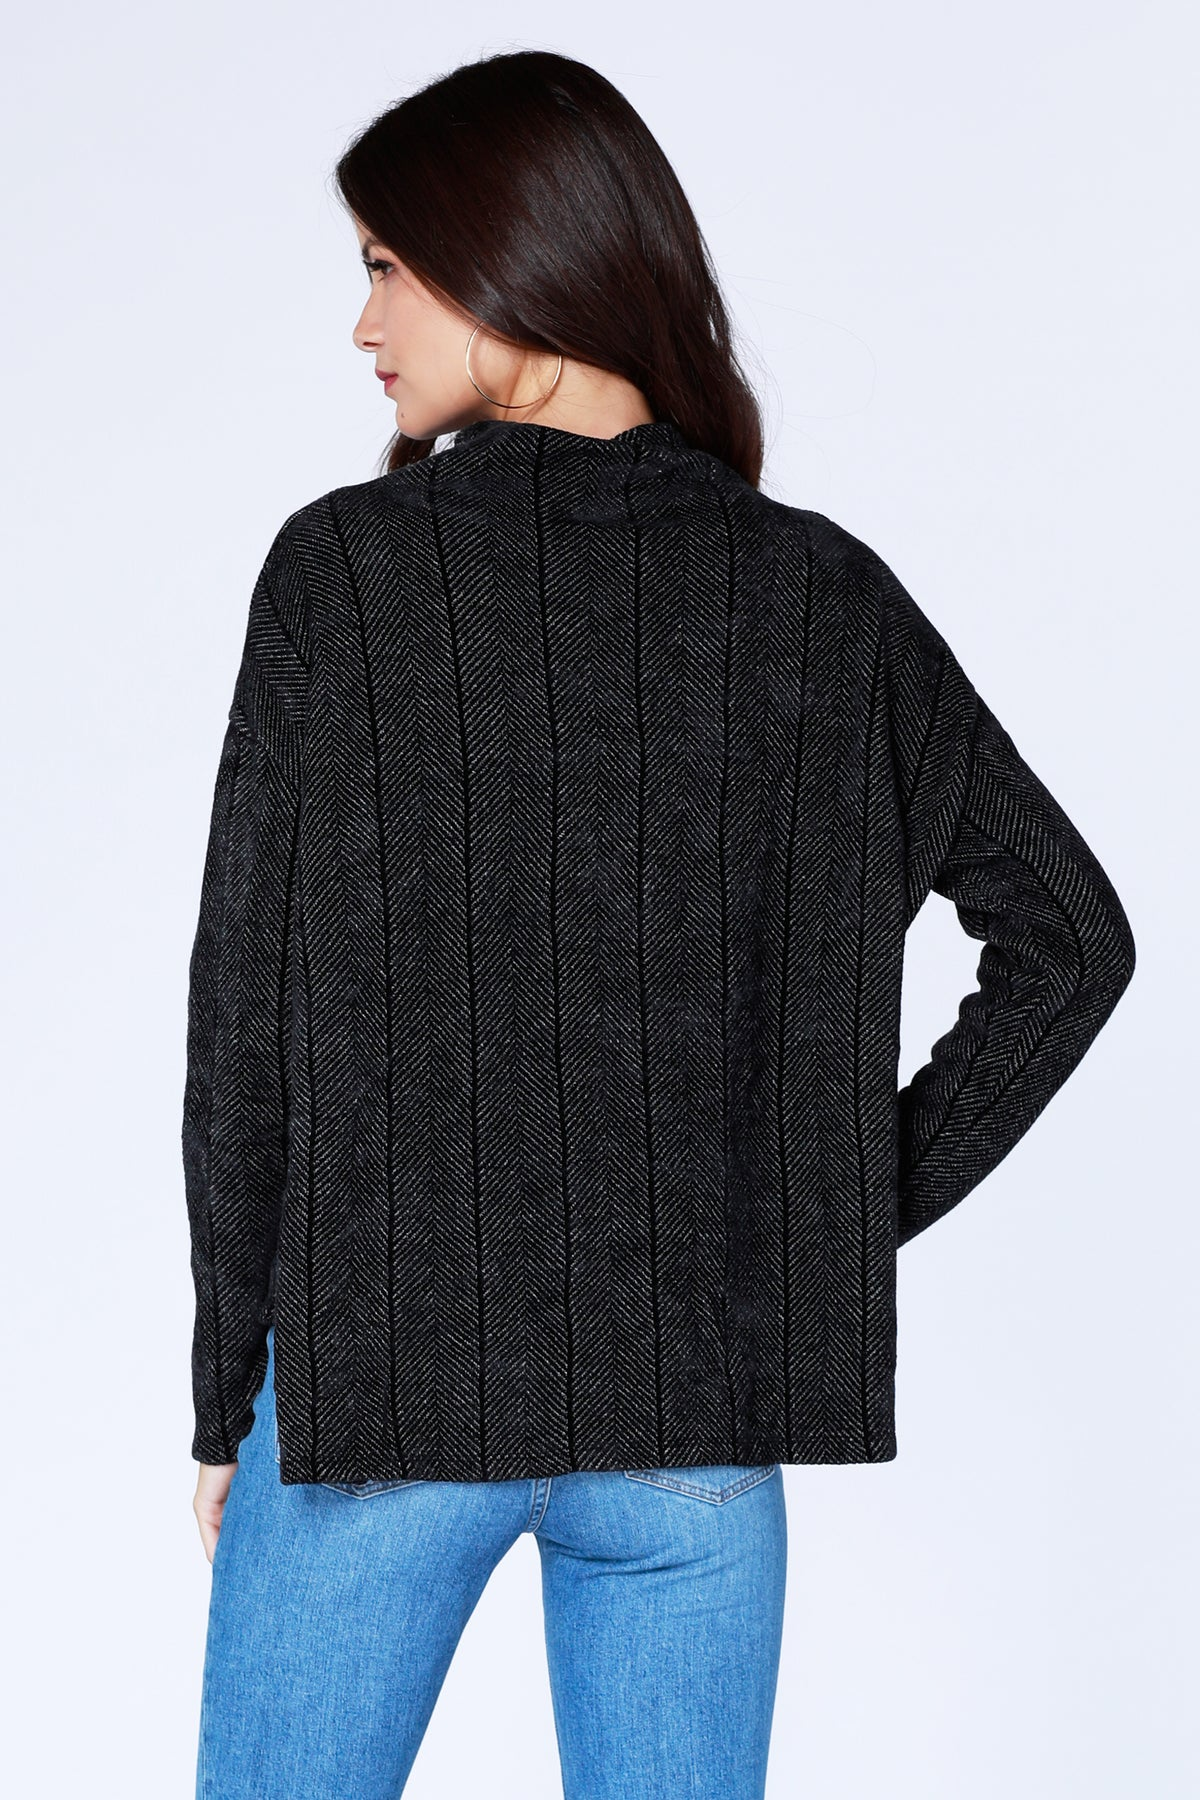 Boxy Mock Neck Sweater - bobi Los Angeles